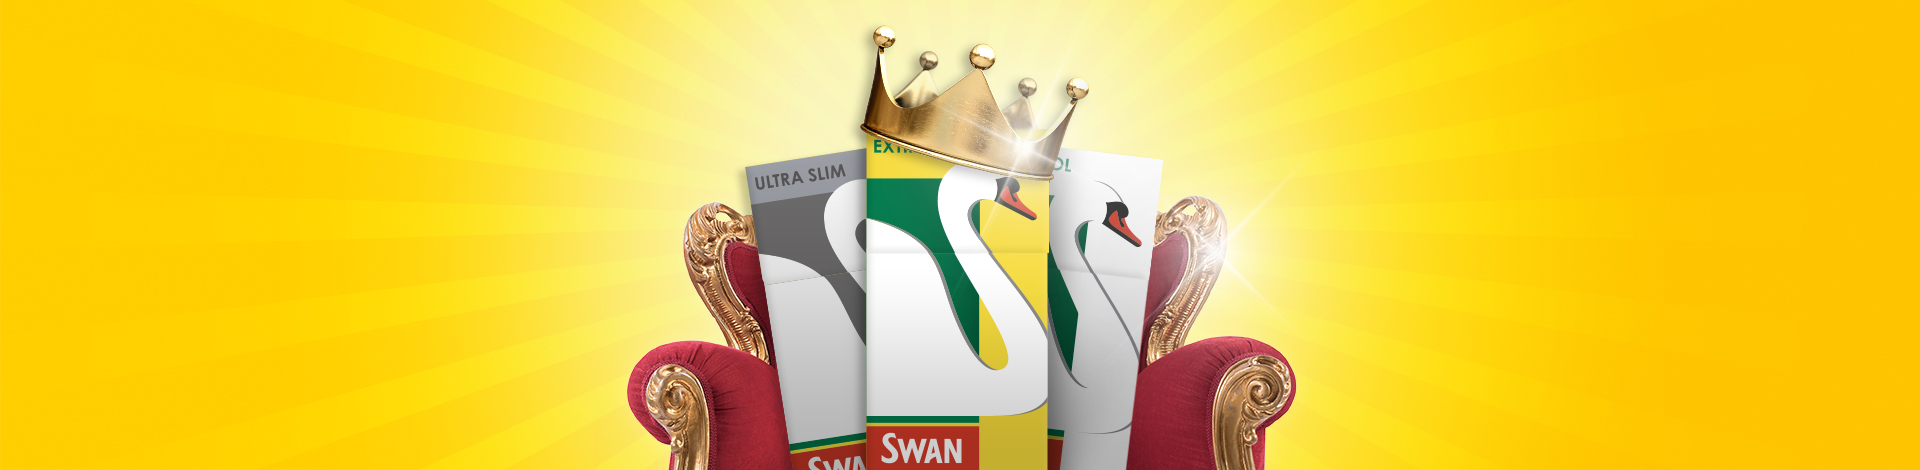 swan-home-footer-graphic-king-of-filters-full-width-lg